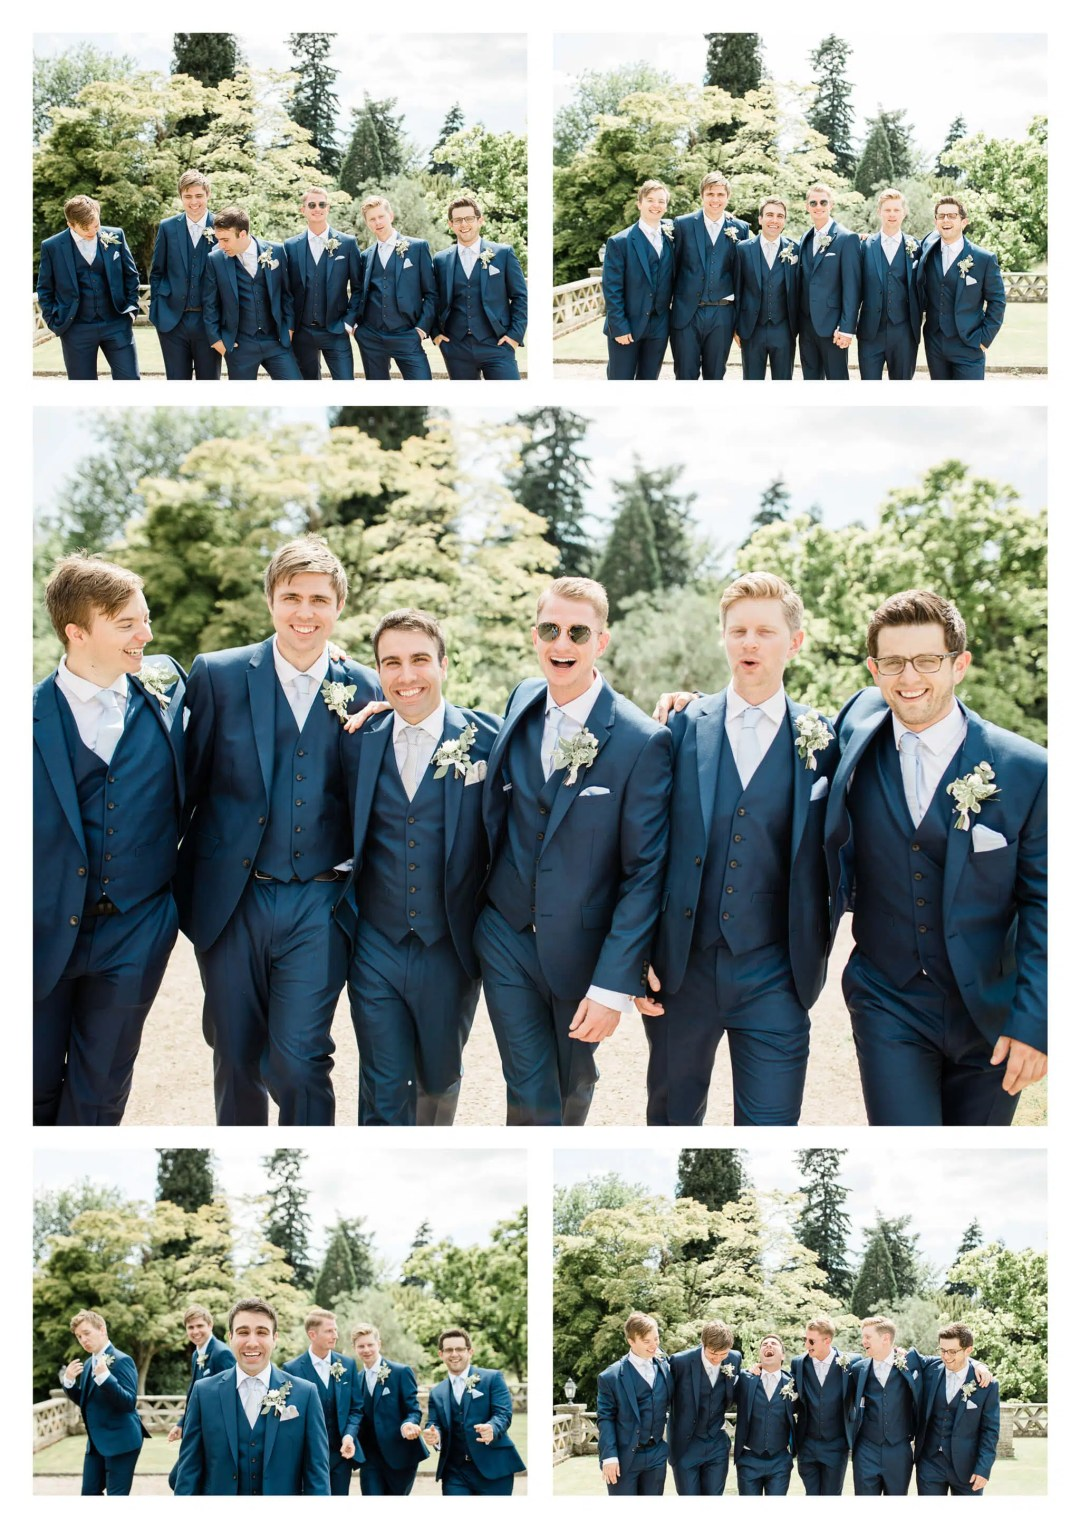 Buxted Park Hotel Groom and Ushers | Wedding Photographer in Uckfield